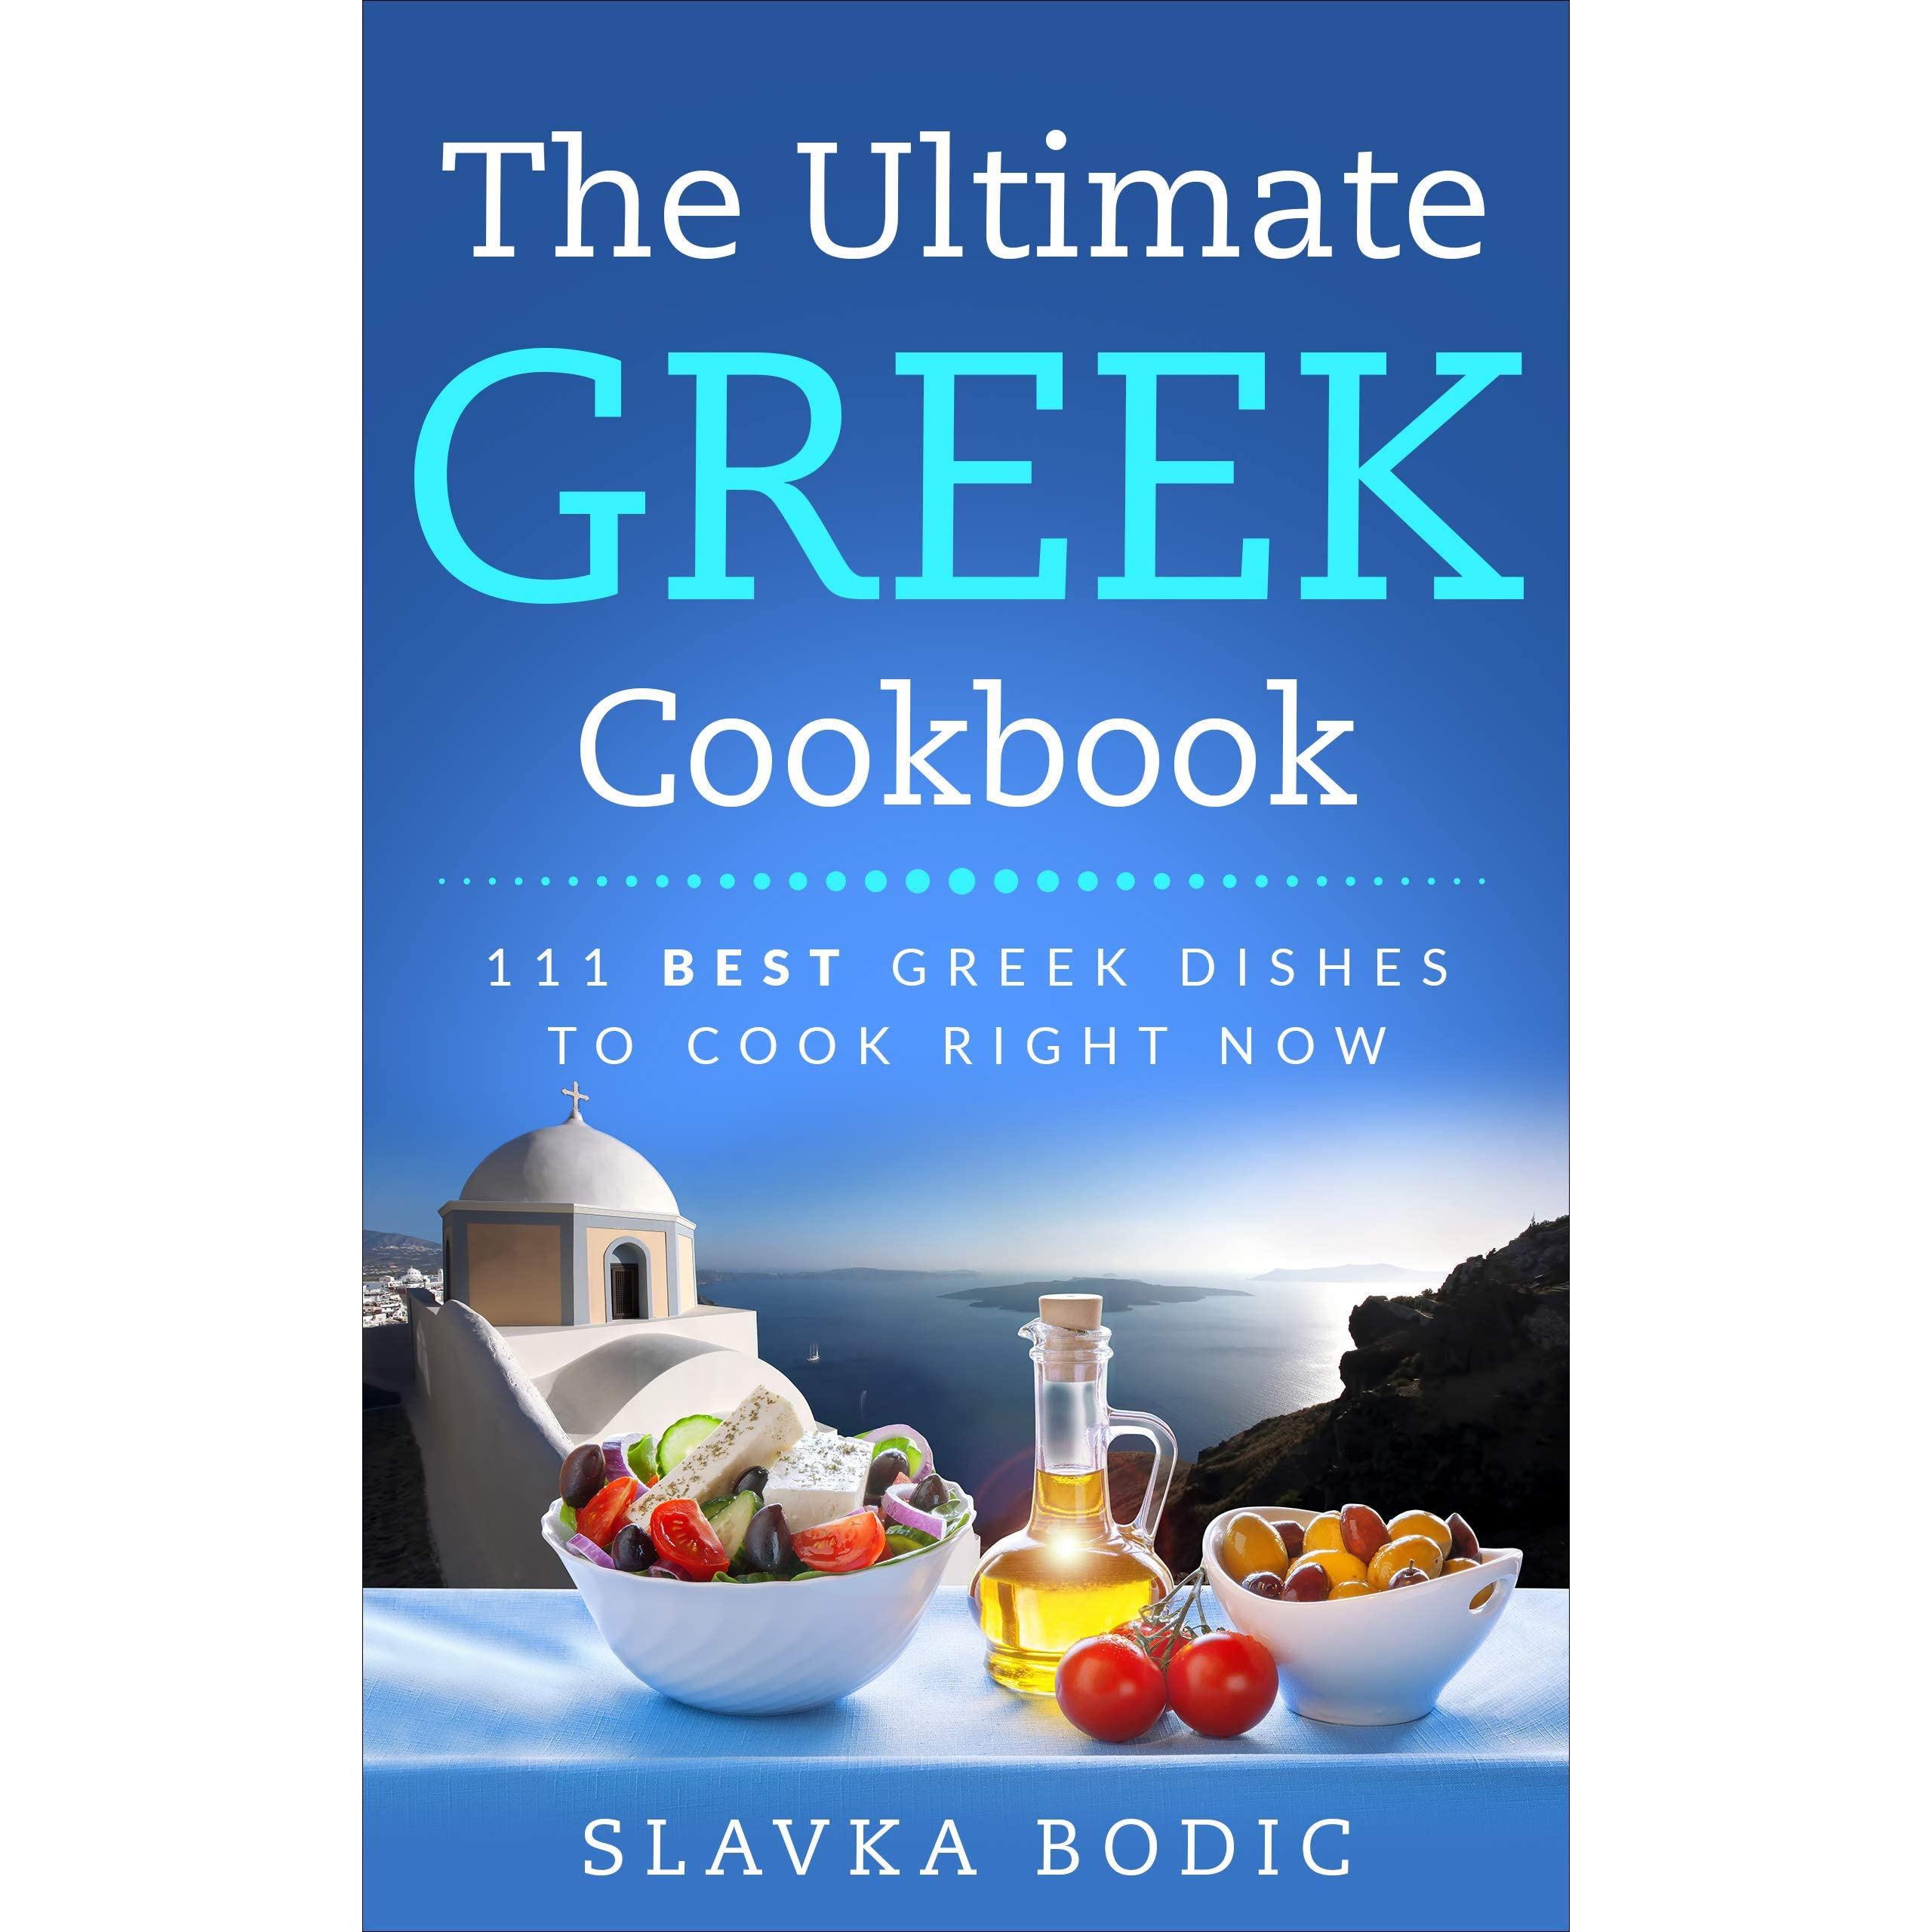 The Ultimate Greek Cookbook 111 Best Greek Dishes To Cook Right Now By Slavka Bodic